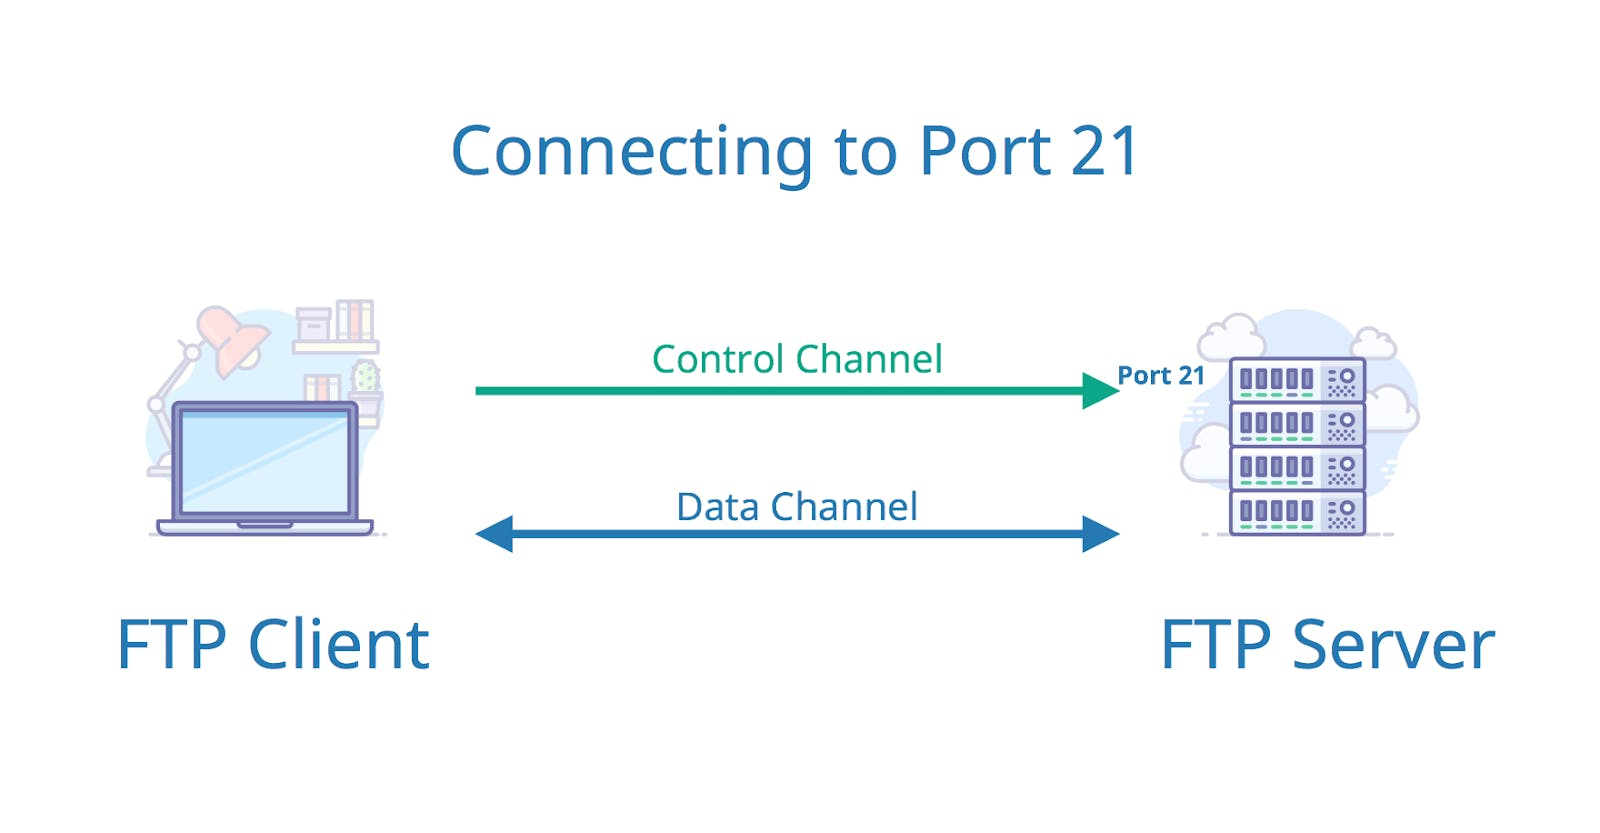 Connecting to FTP server via port 21.